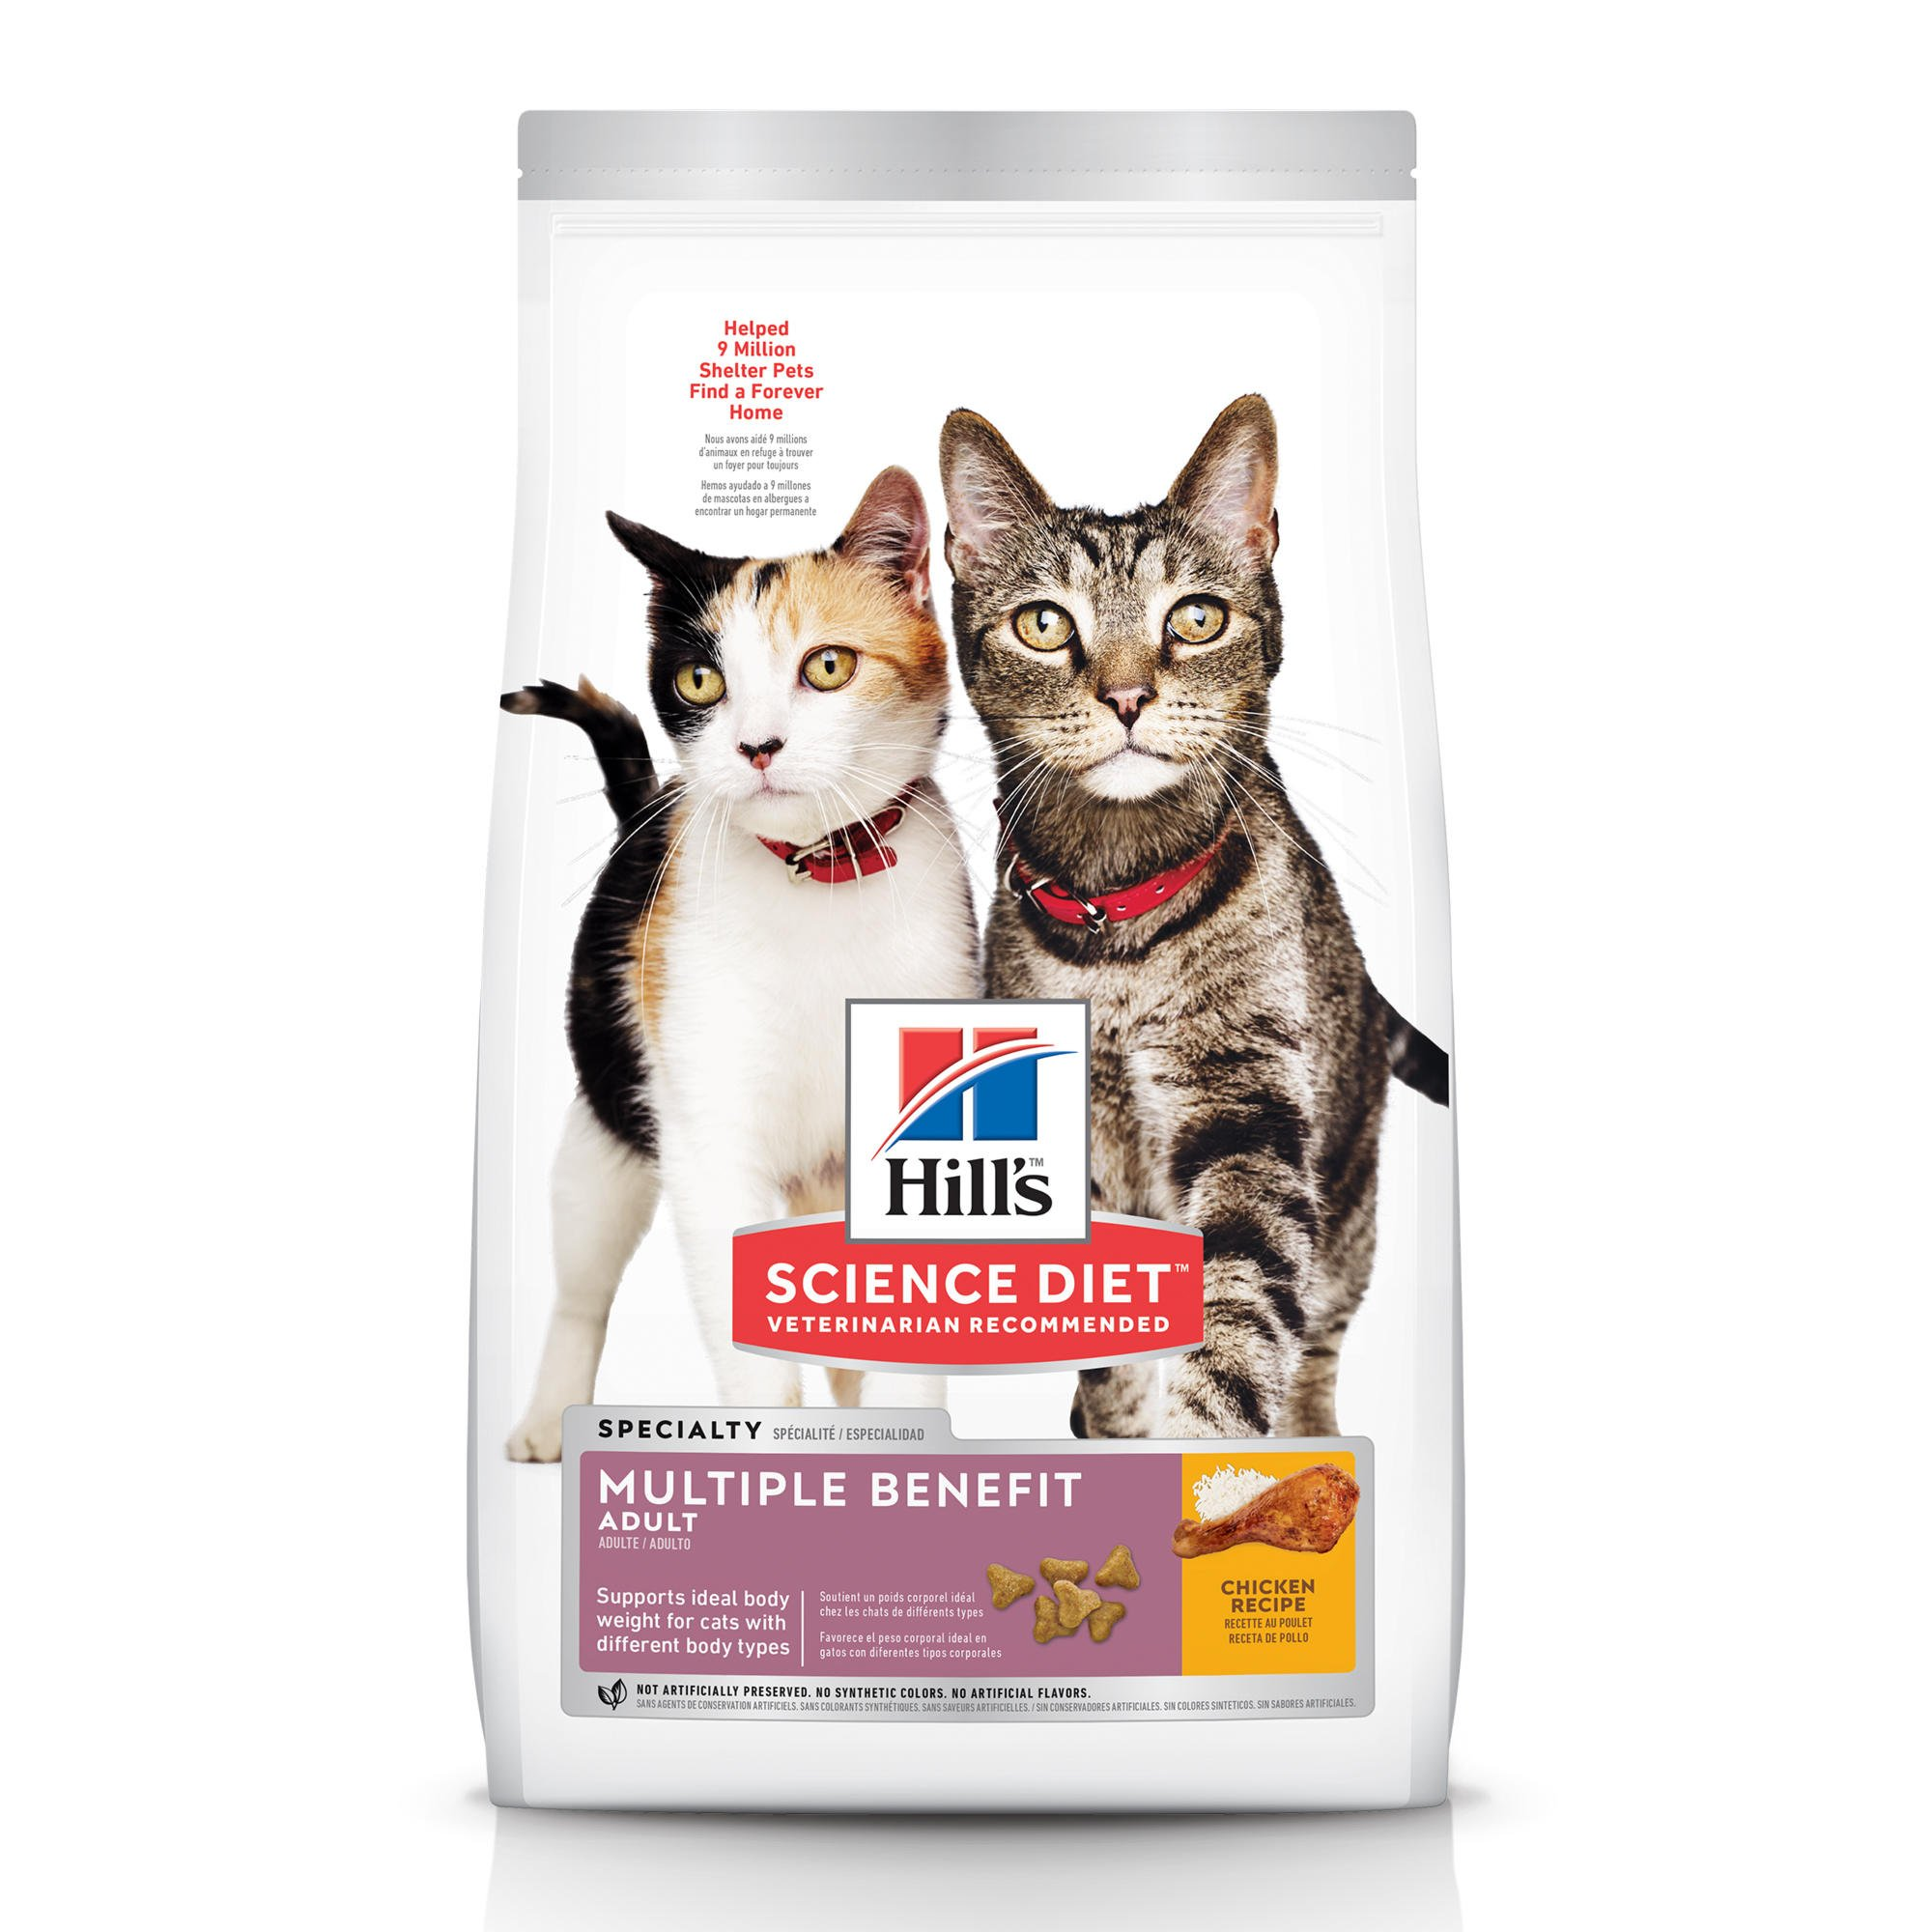 Hill's Prescription Diet Cat Food